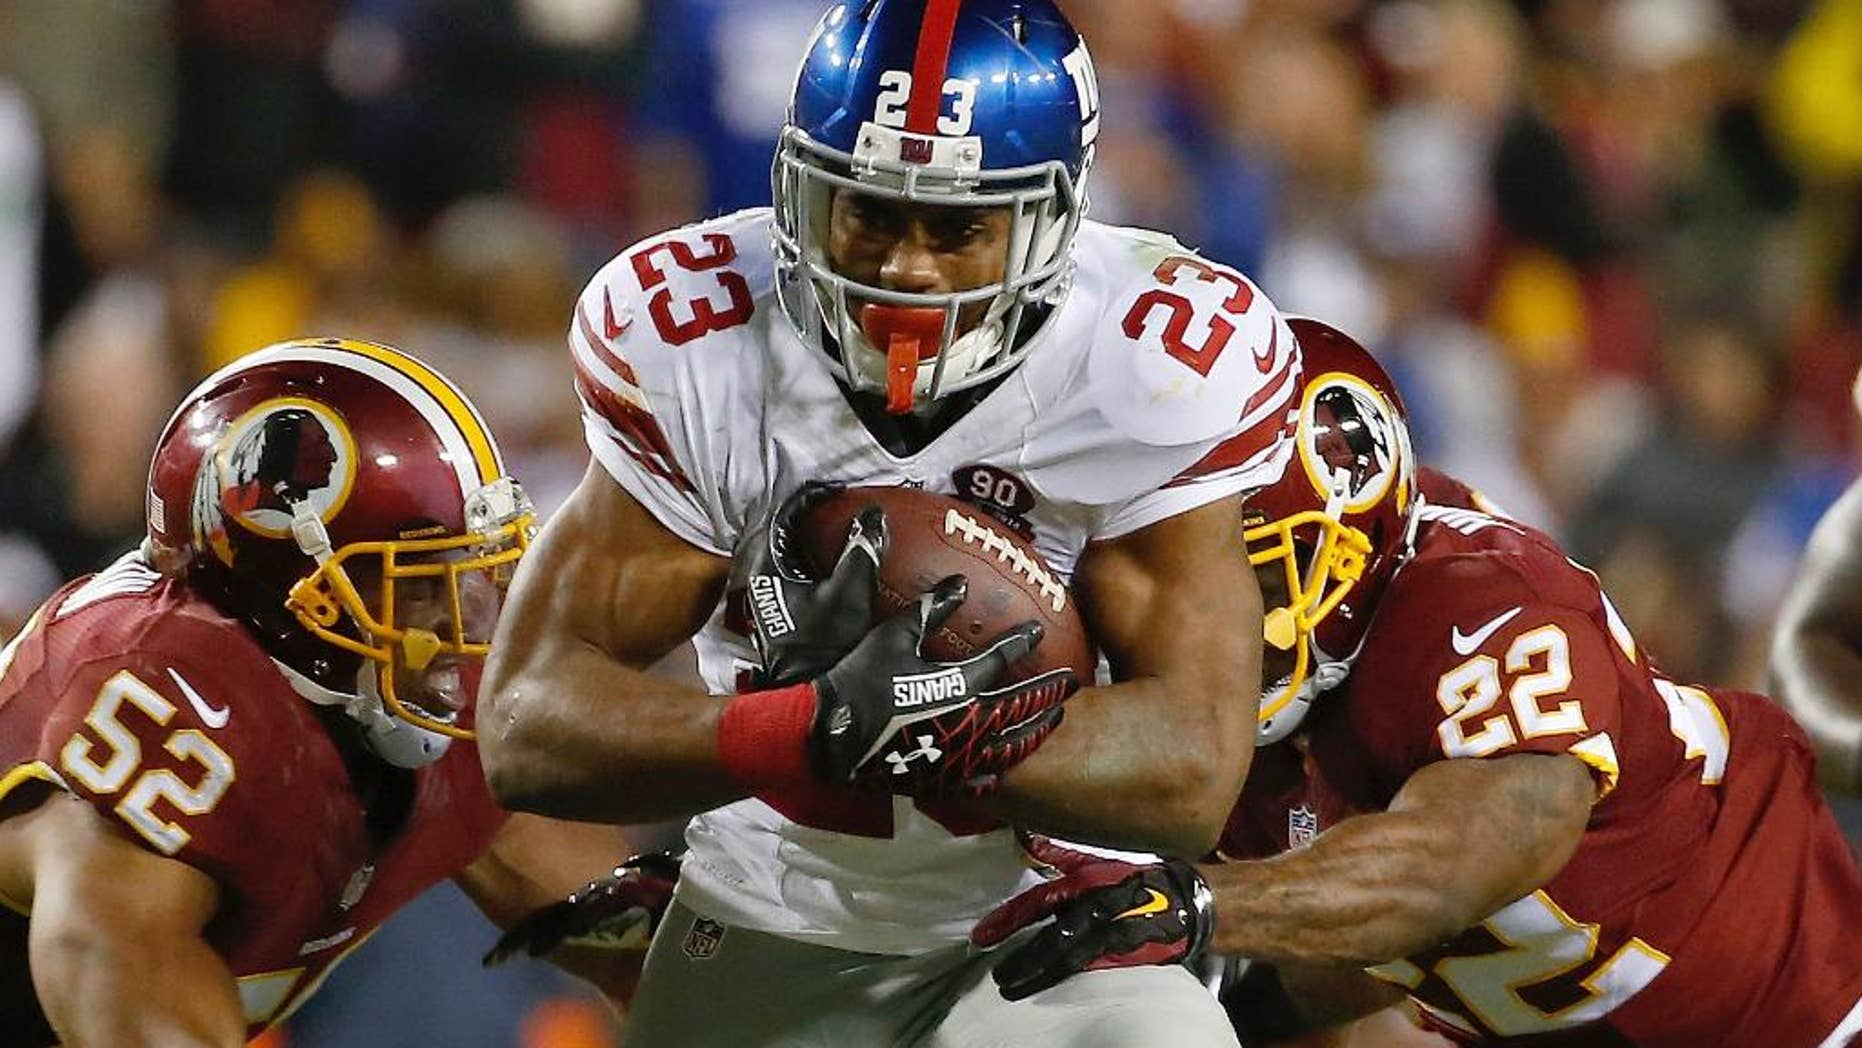 FILE - In this Se[t. 25, 2014, file photo, New York Giants running back Rashad Jennings (23) carries the ball during the second half of an NFL Thursday night football game against the Washington Redskins in Landover, Md.  The dormant Giants running game seemingly is going to get its top halfback back on the field this weekend when Rashad Jennings plays against the San Francisco 49ers. (AP Photo/Alex Brandon, File)